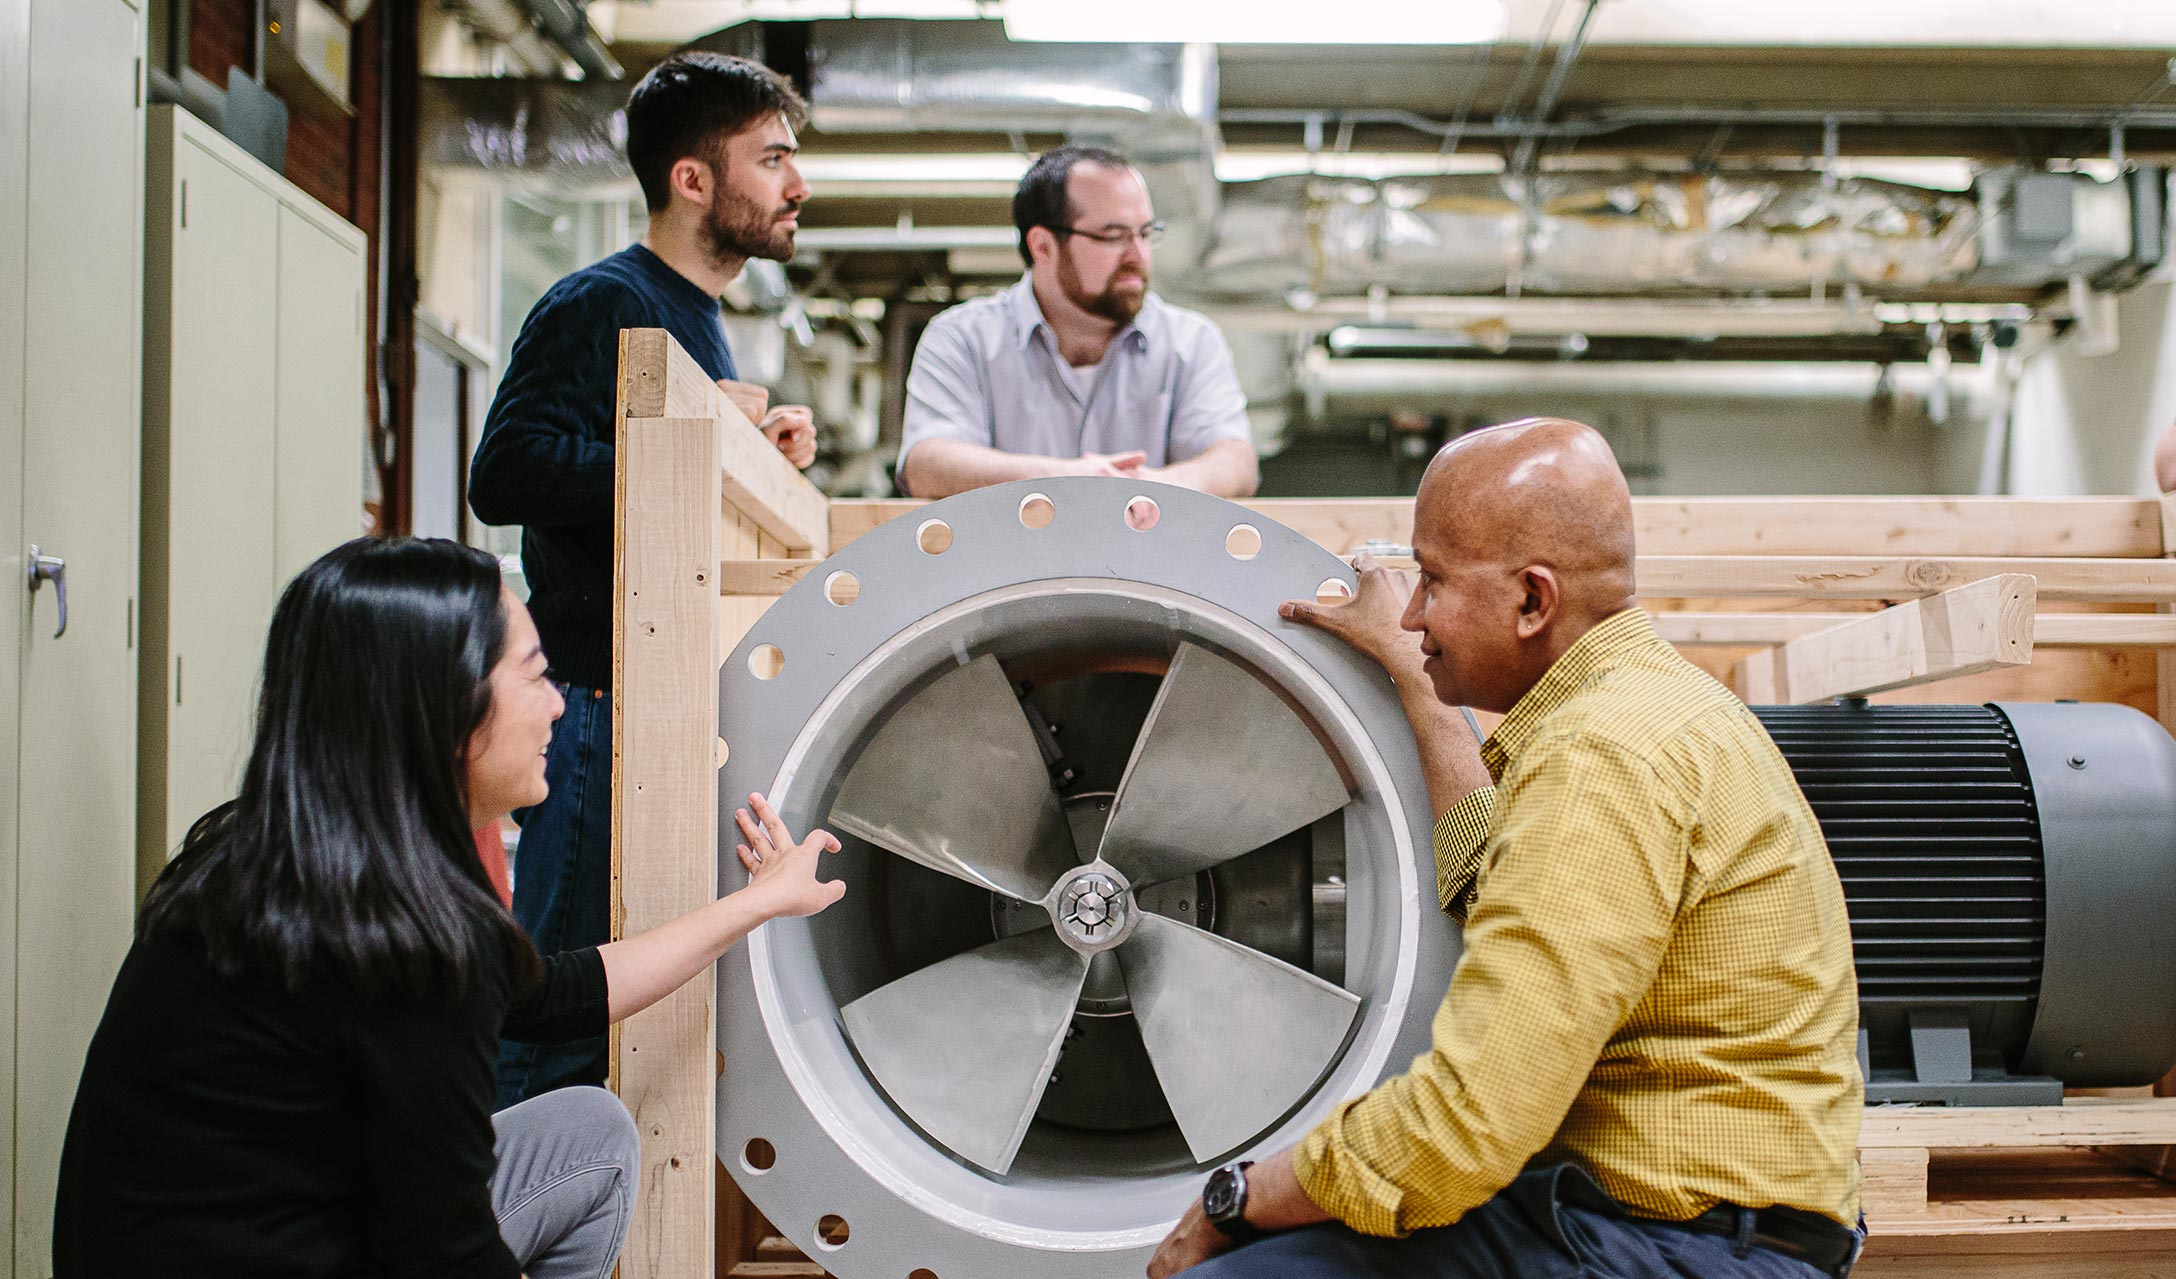 Krish Sharman and graduate students examine a newly-arrived water turbine for their lab